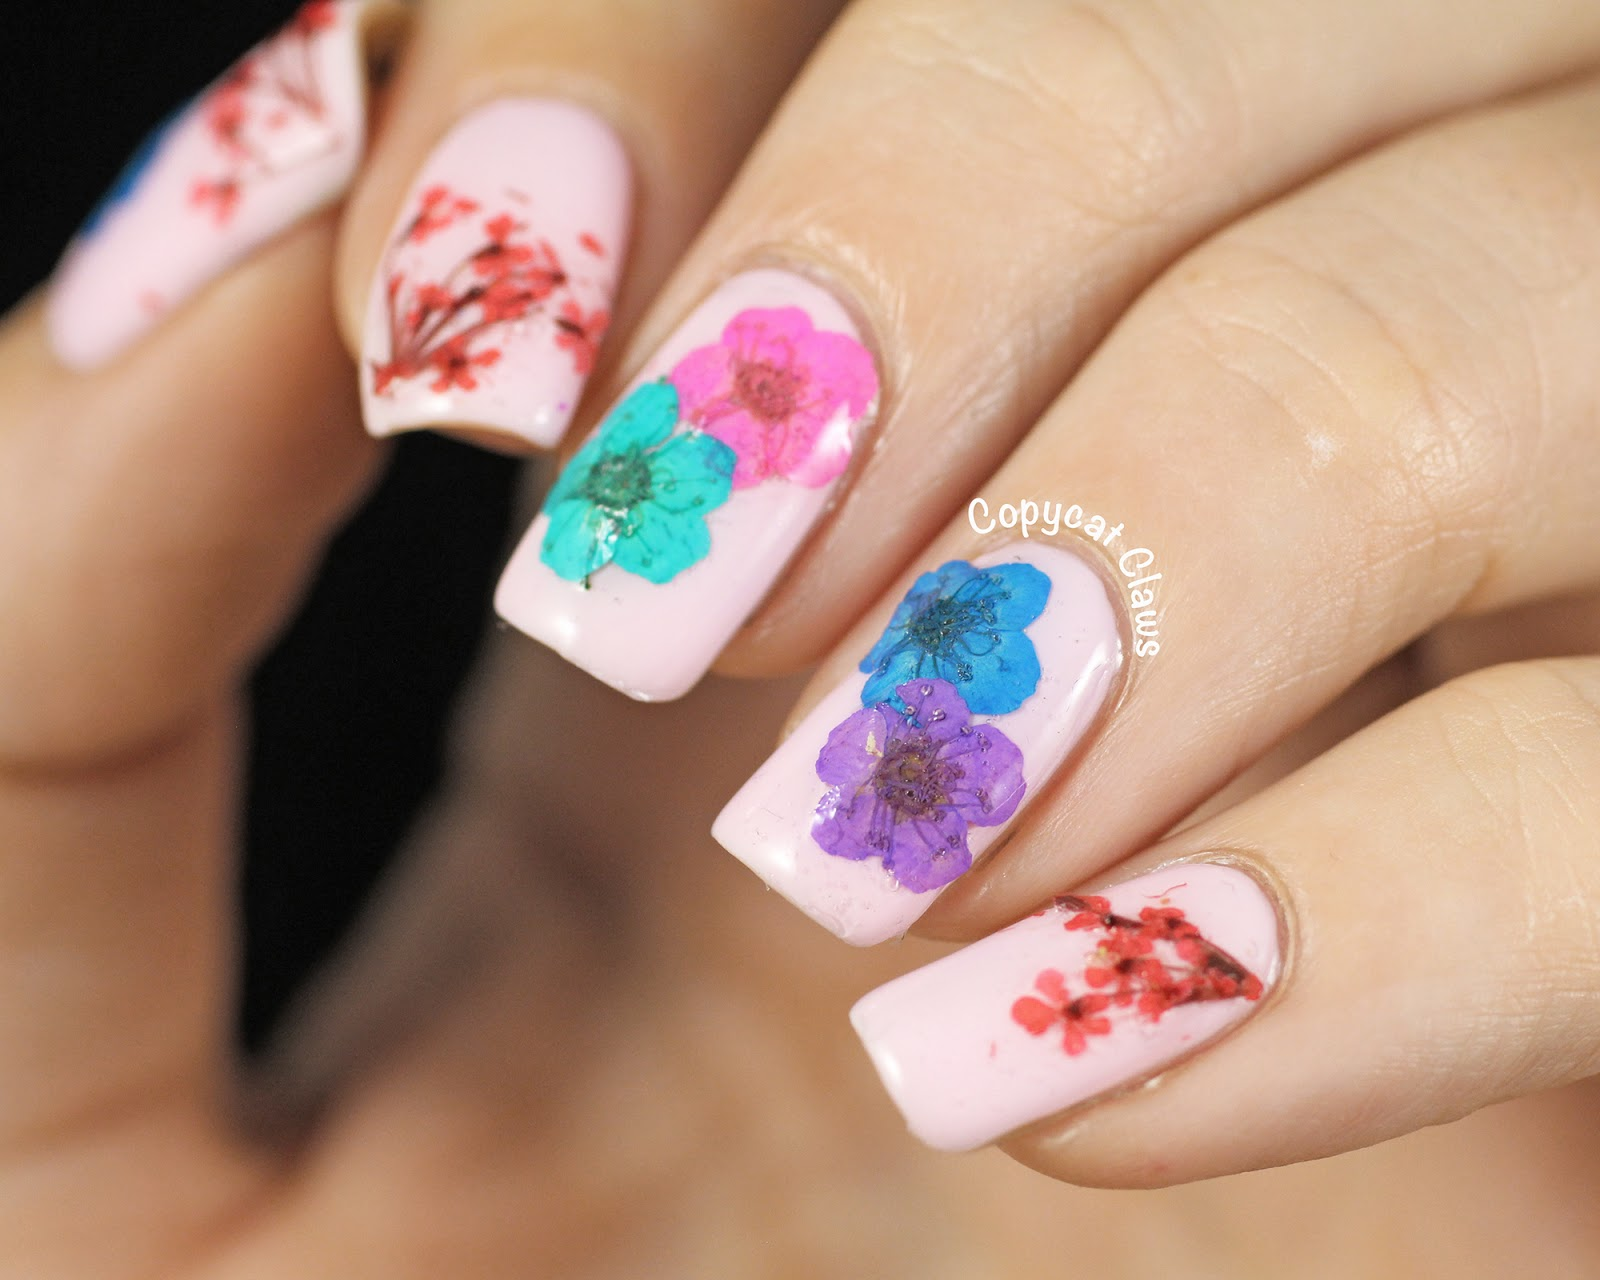 Copycat Claws: Real Dried Flower Nail Art